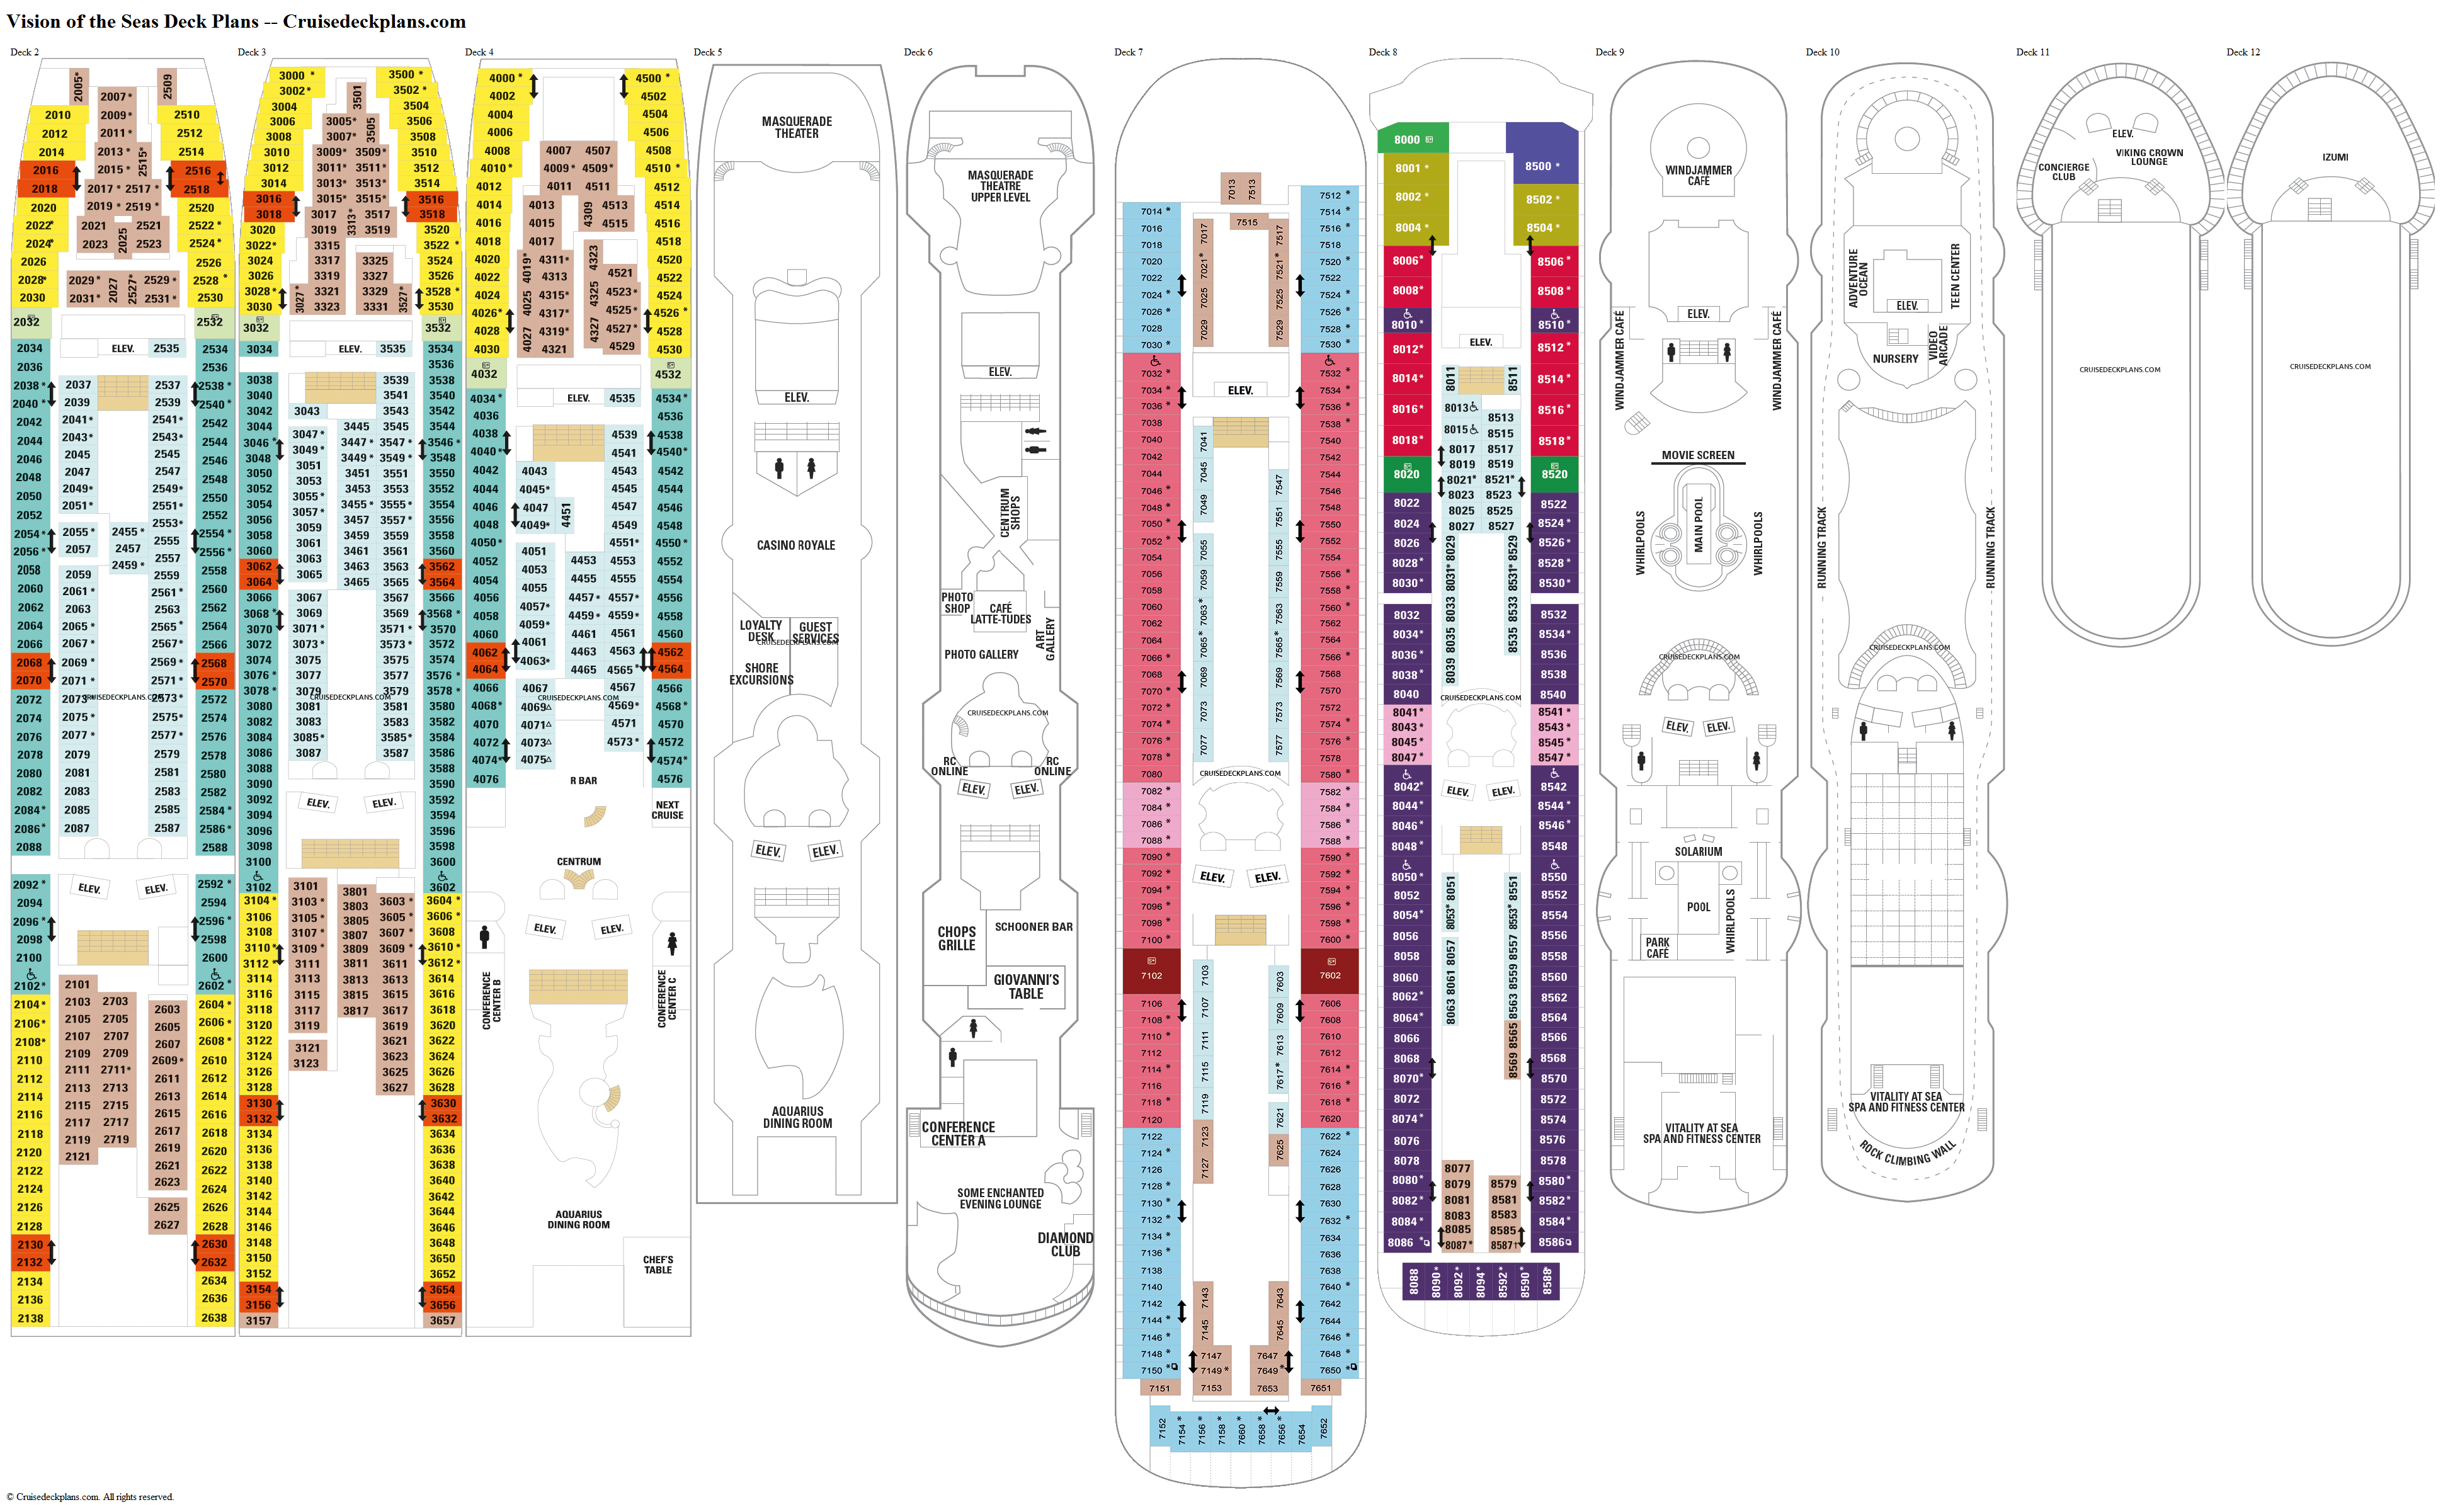 Vision of the Seas deck plans image